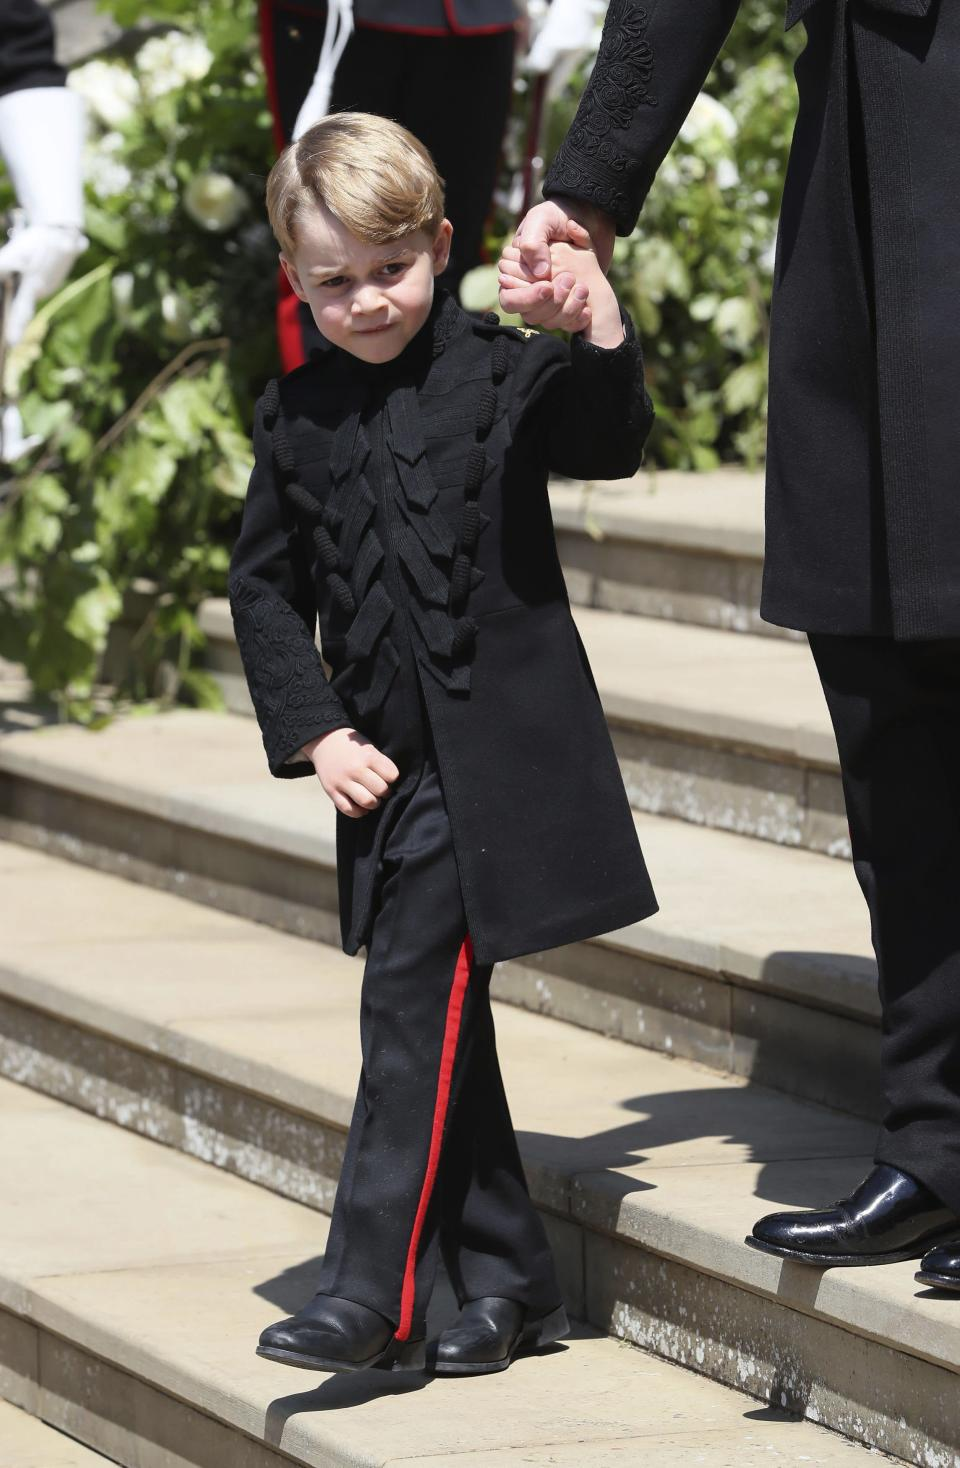 Prince George leaves after the wedding.